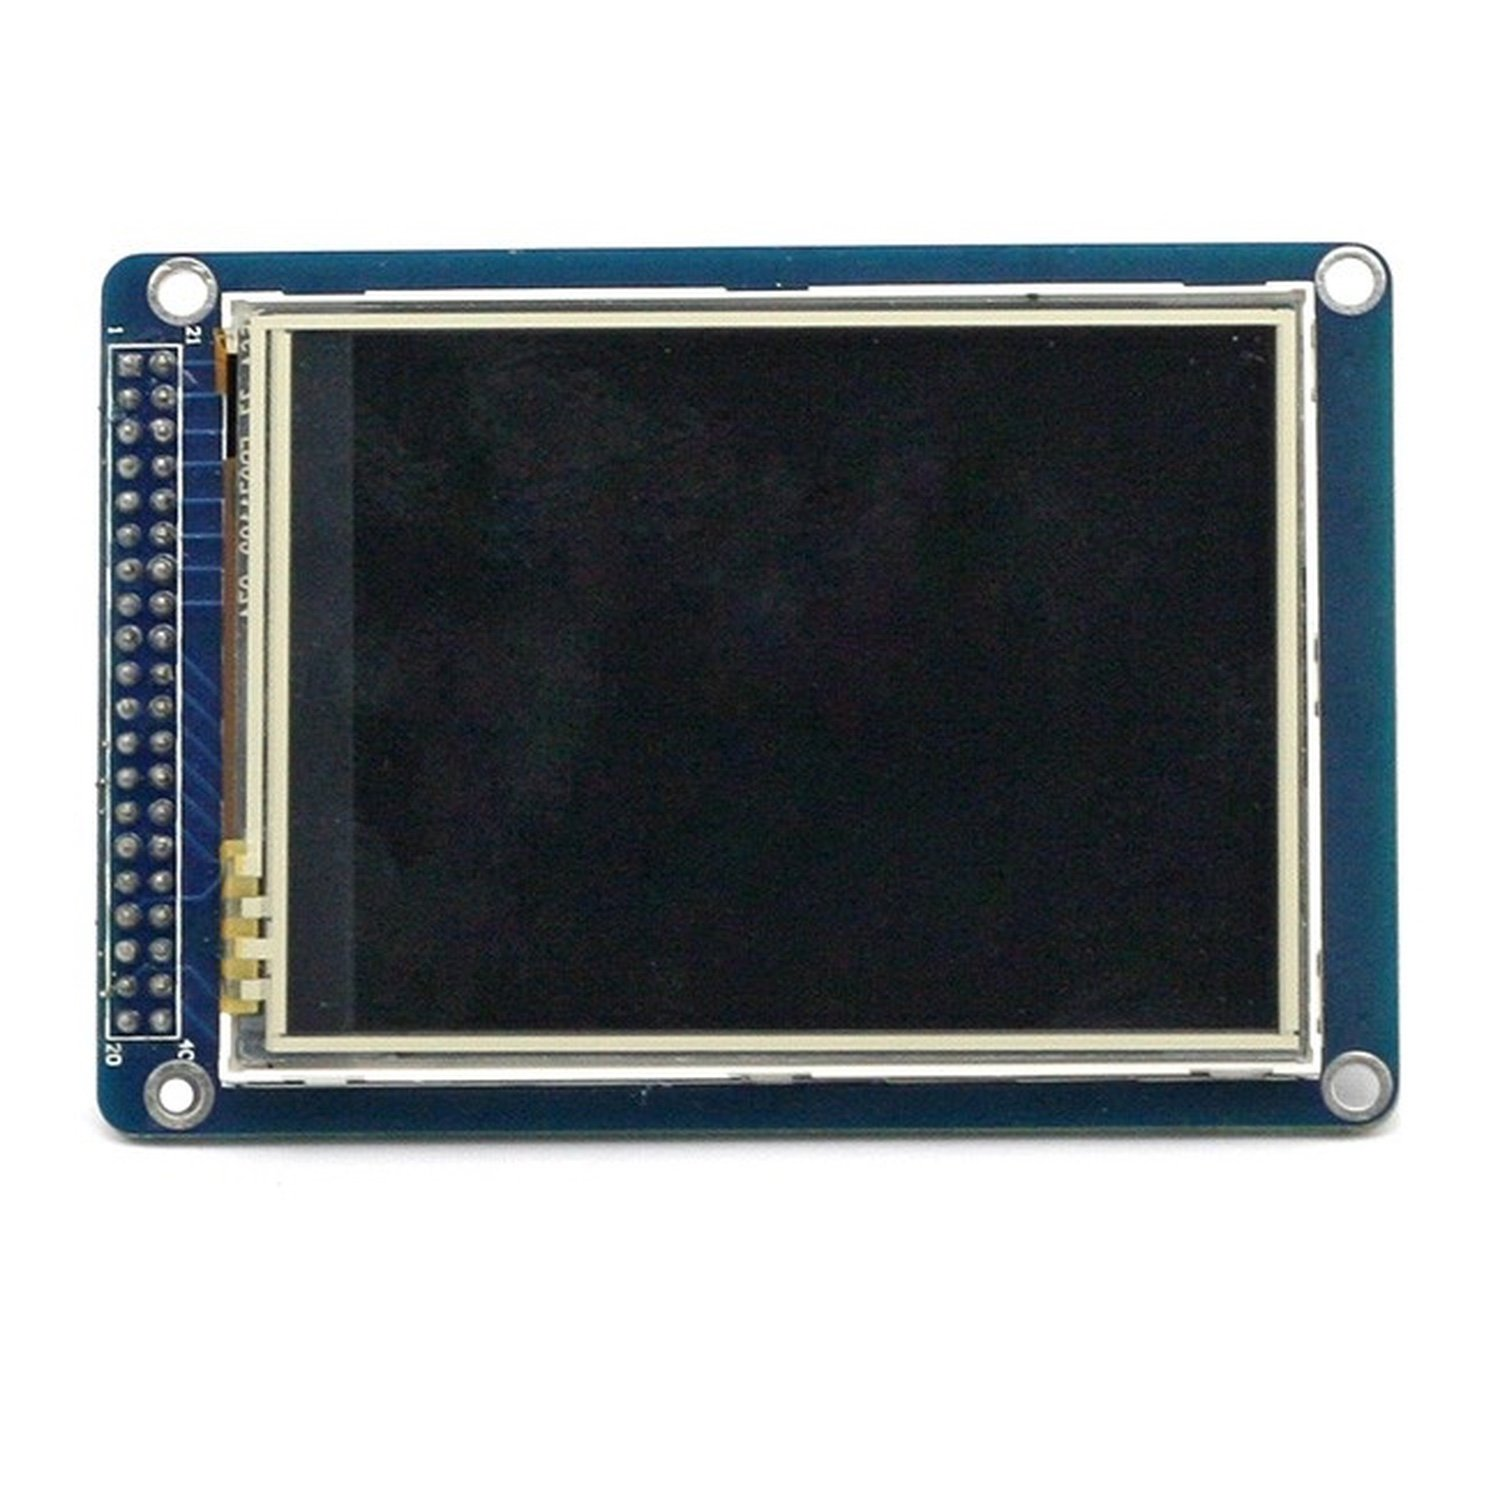 цена на 3,2 TFT LCD Shield for Arduino MEGA [Arduino Compatible]